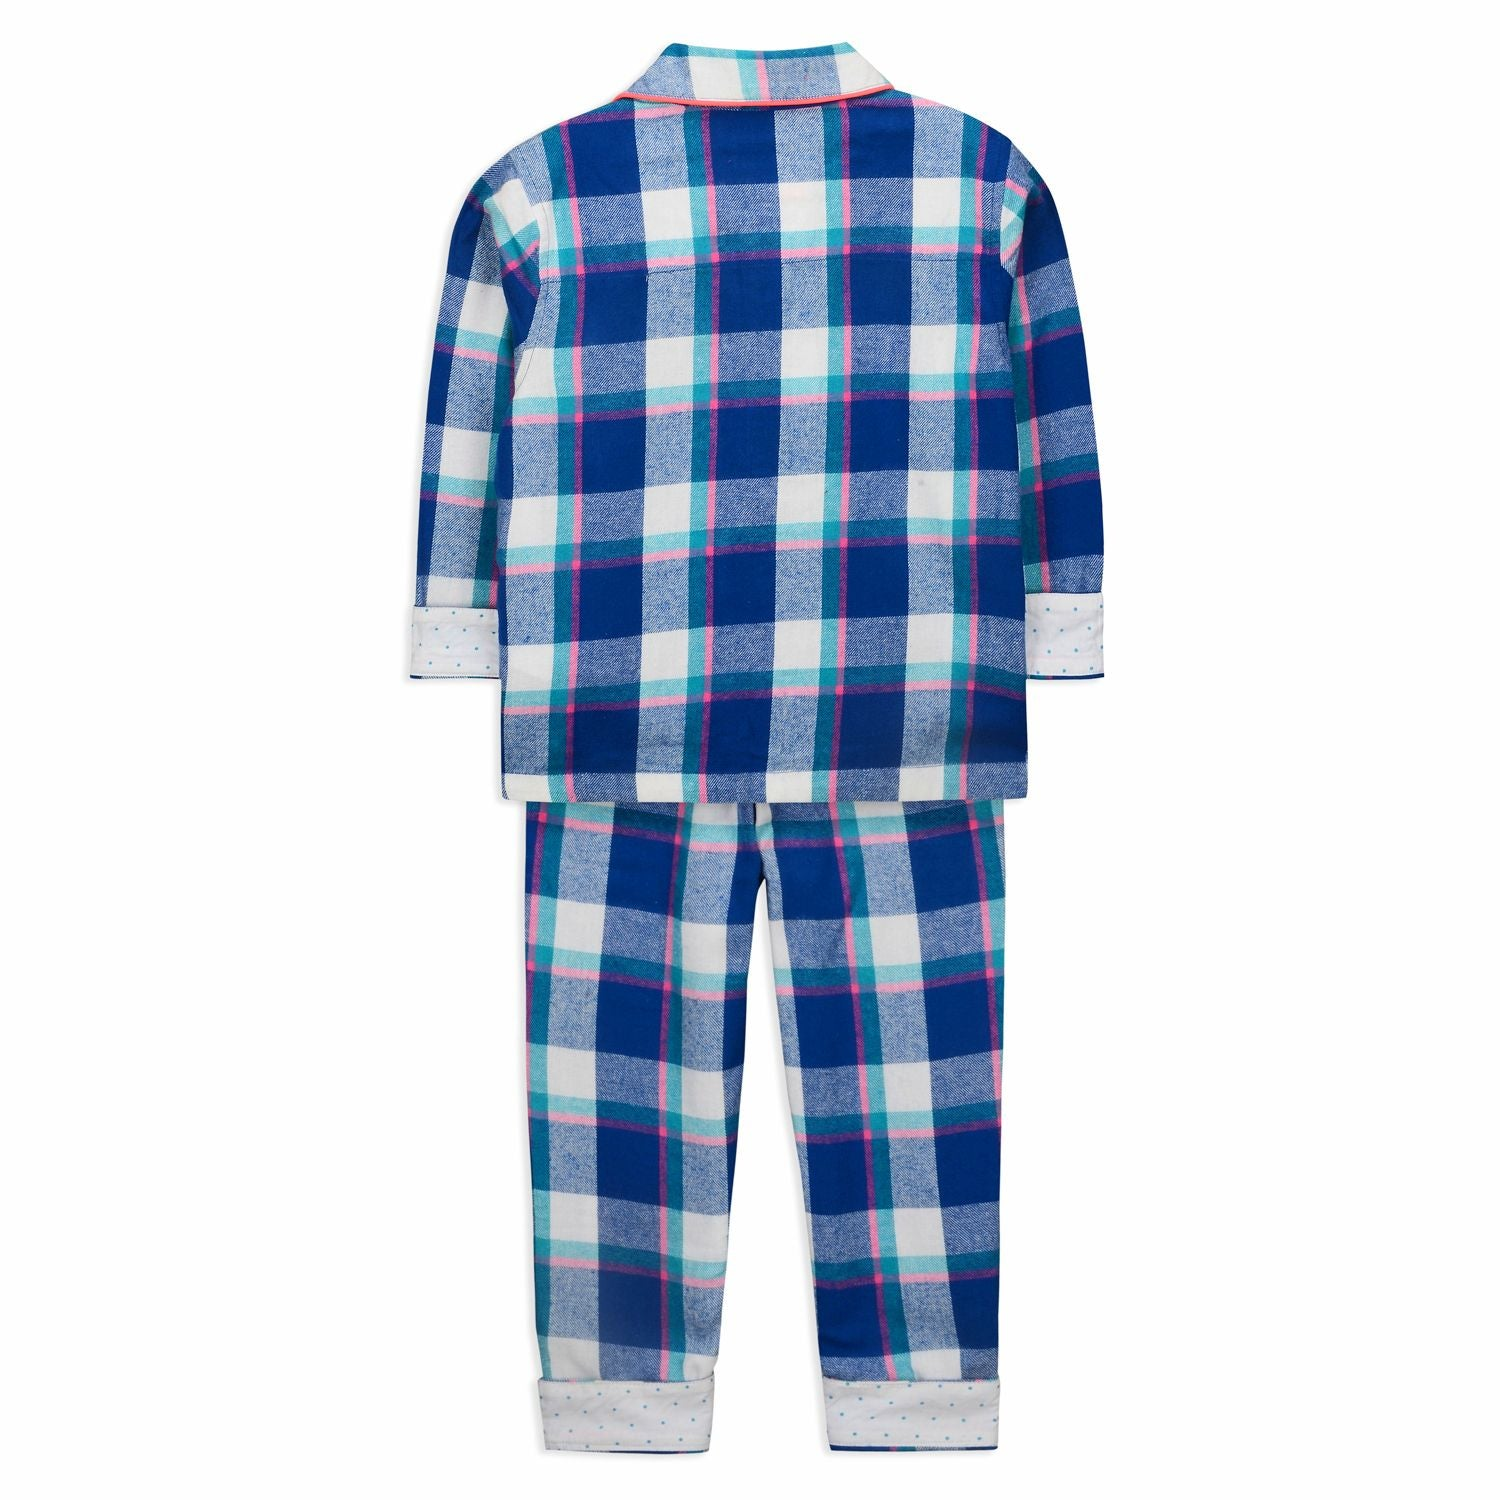 Crayon Nightsuit  for kids